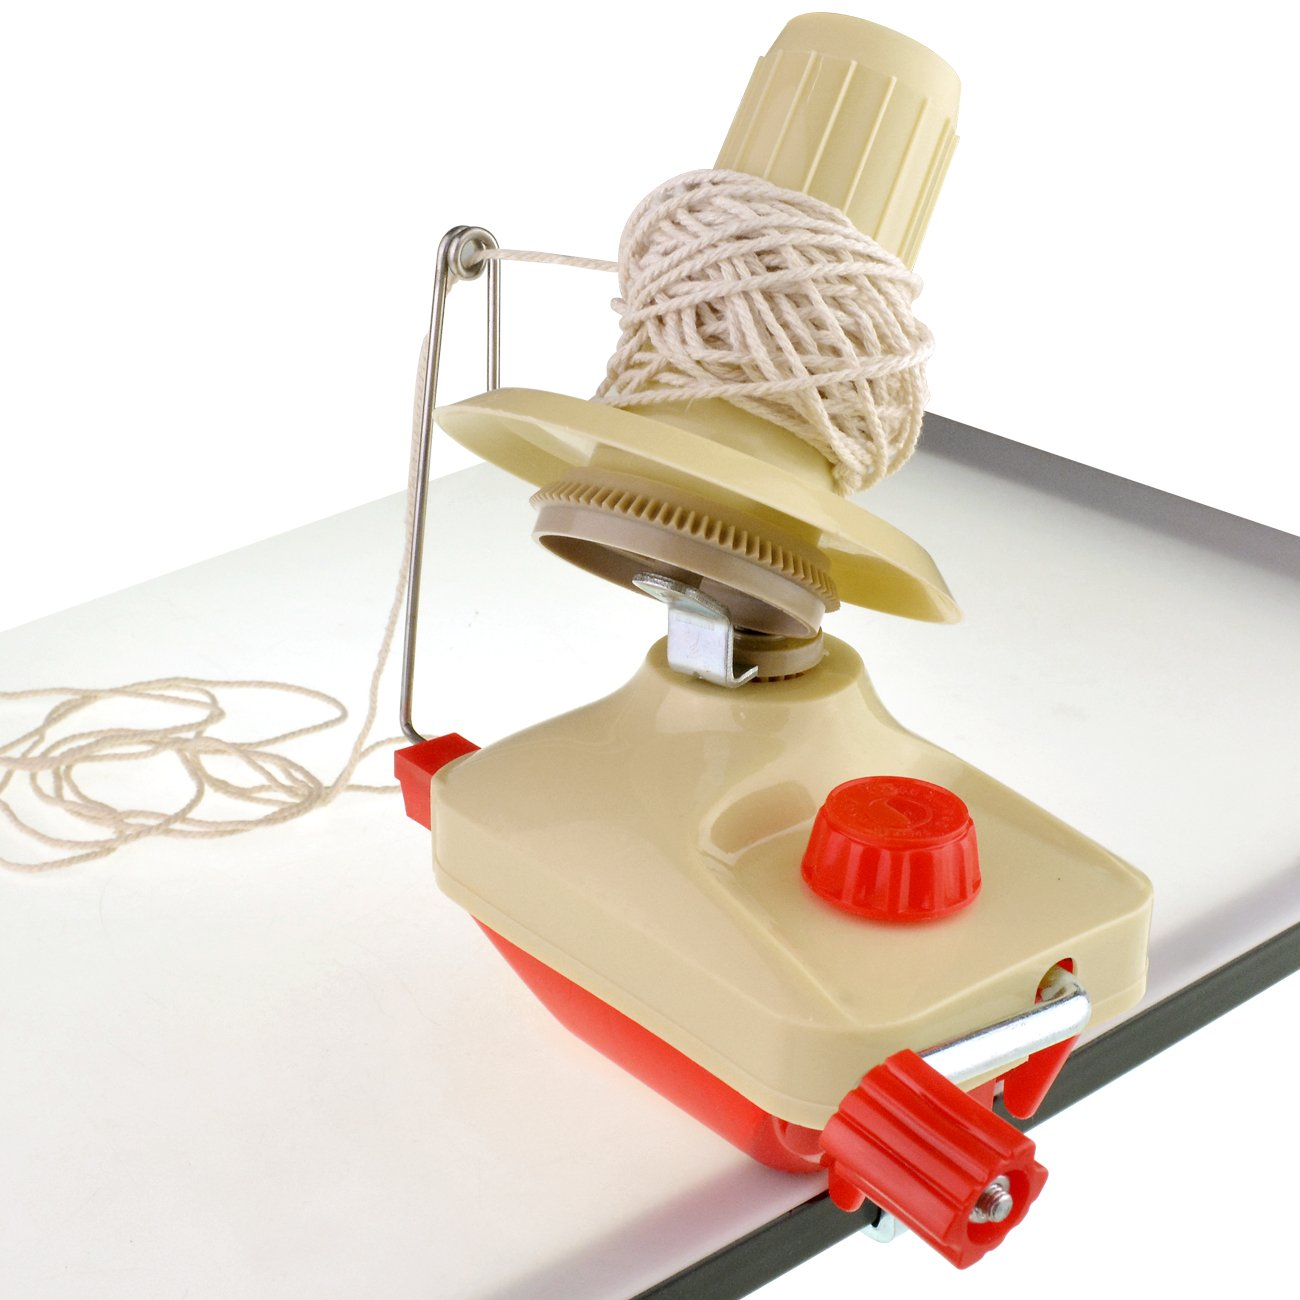 Monkeybrother Thread Skein Ball Tidy Machine Hand Operated Wool Winder Holder for Swift Yarn Fiber String Ball